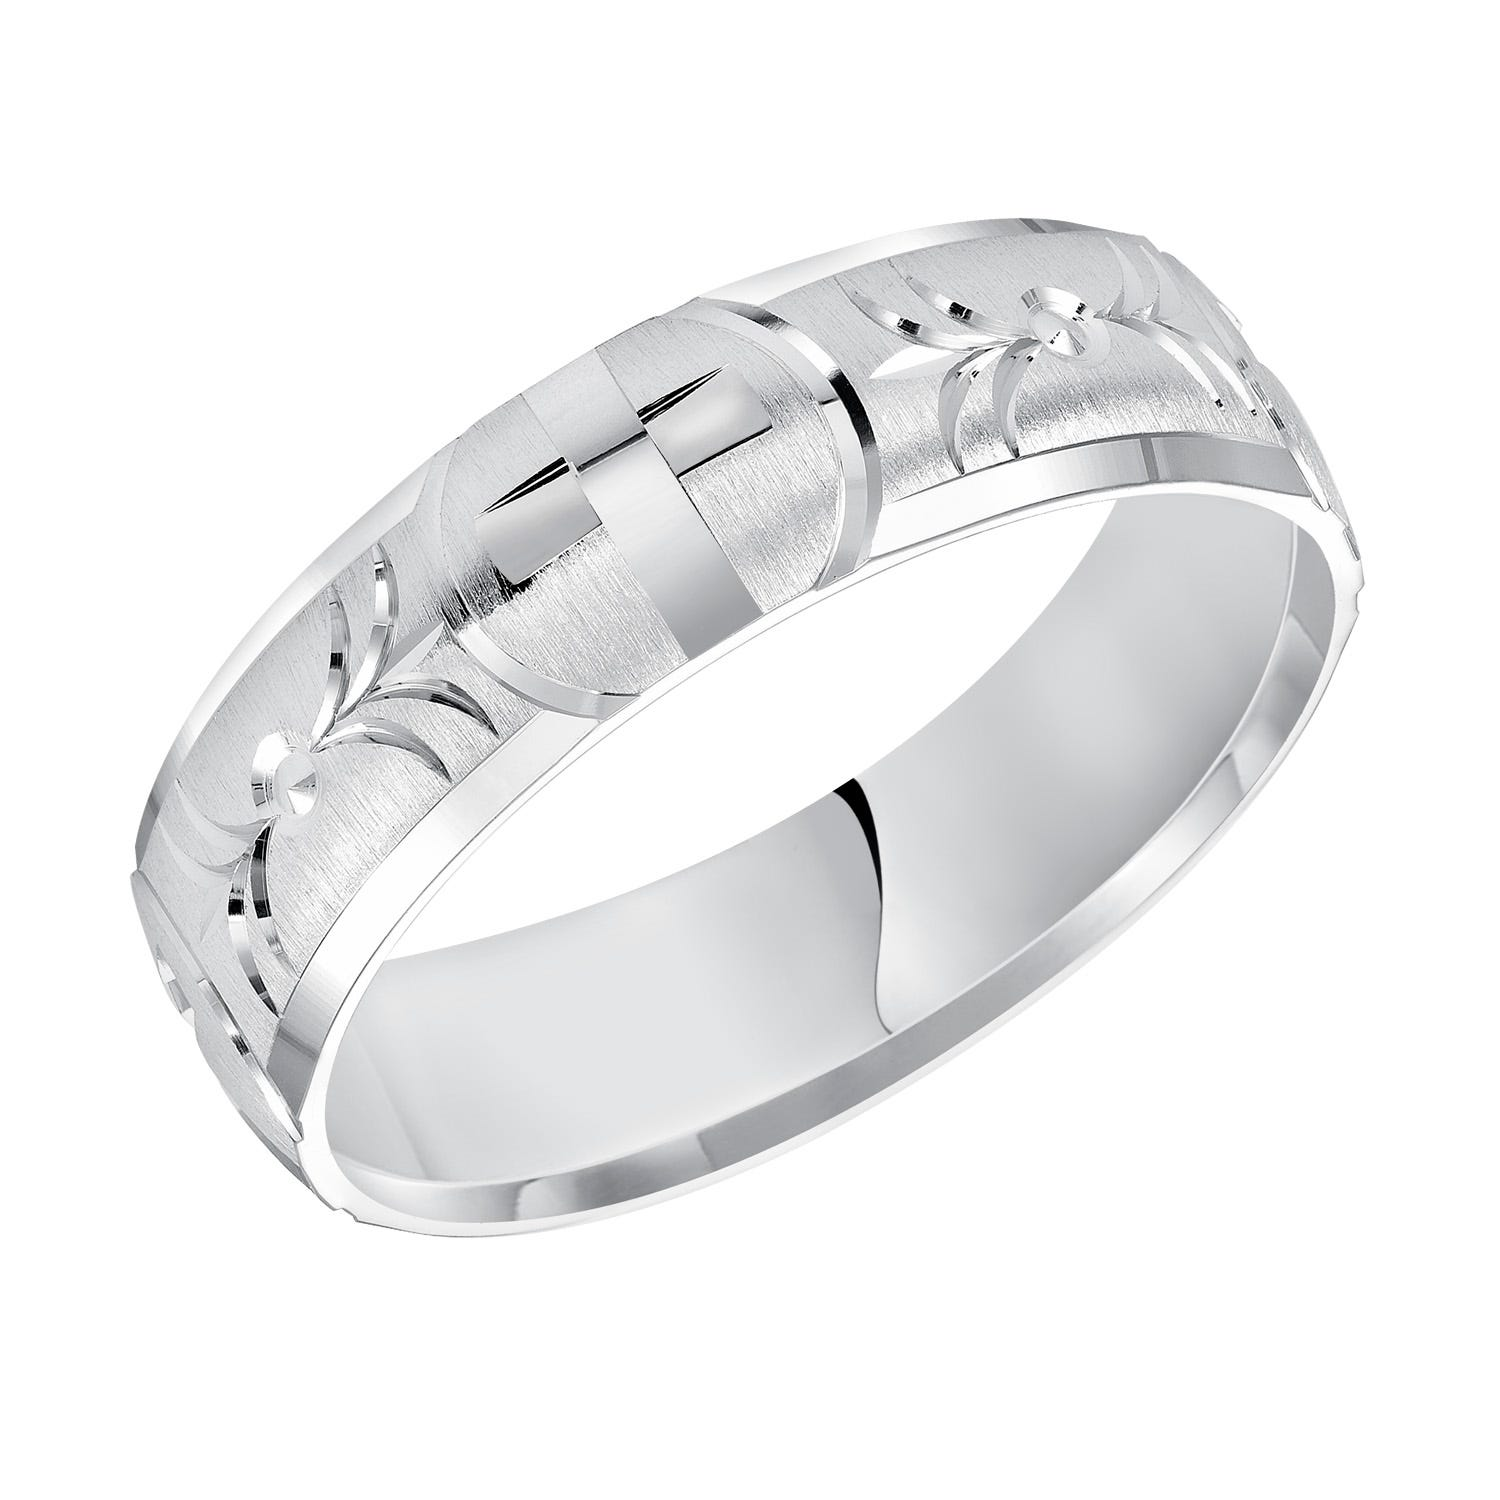 Men's Swiss Cut & Cross Detail Wedding Band in 14k White Gold